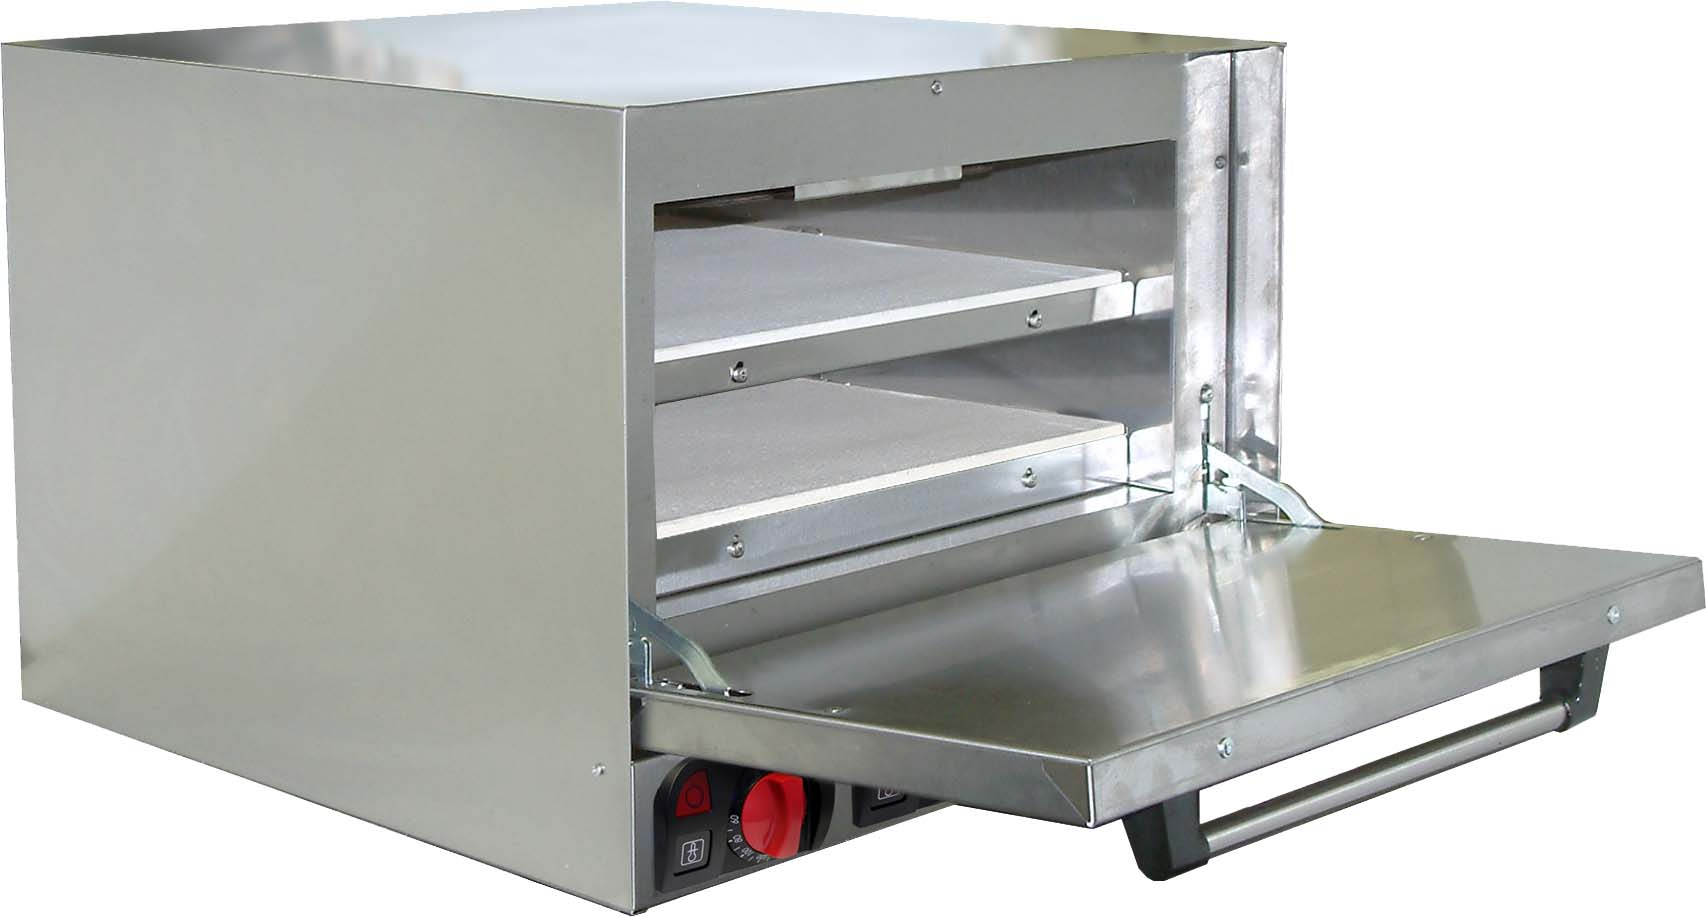 poa1001--pizza-oven-anvil--twin-shelf